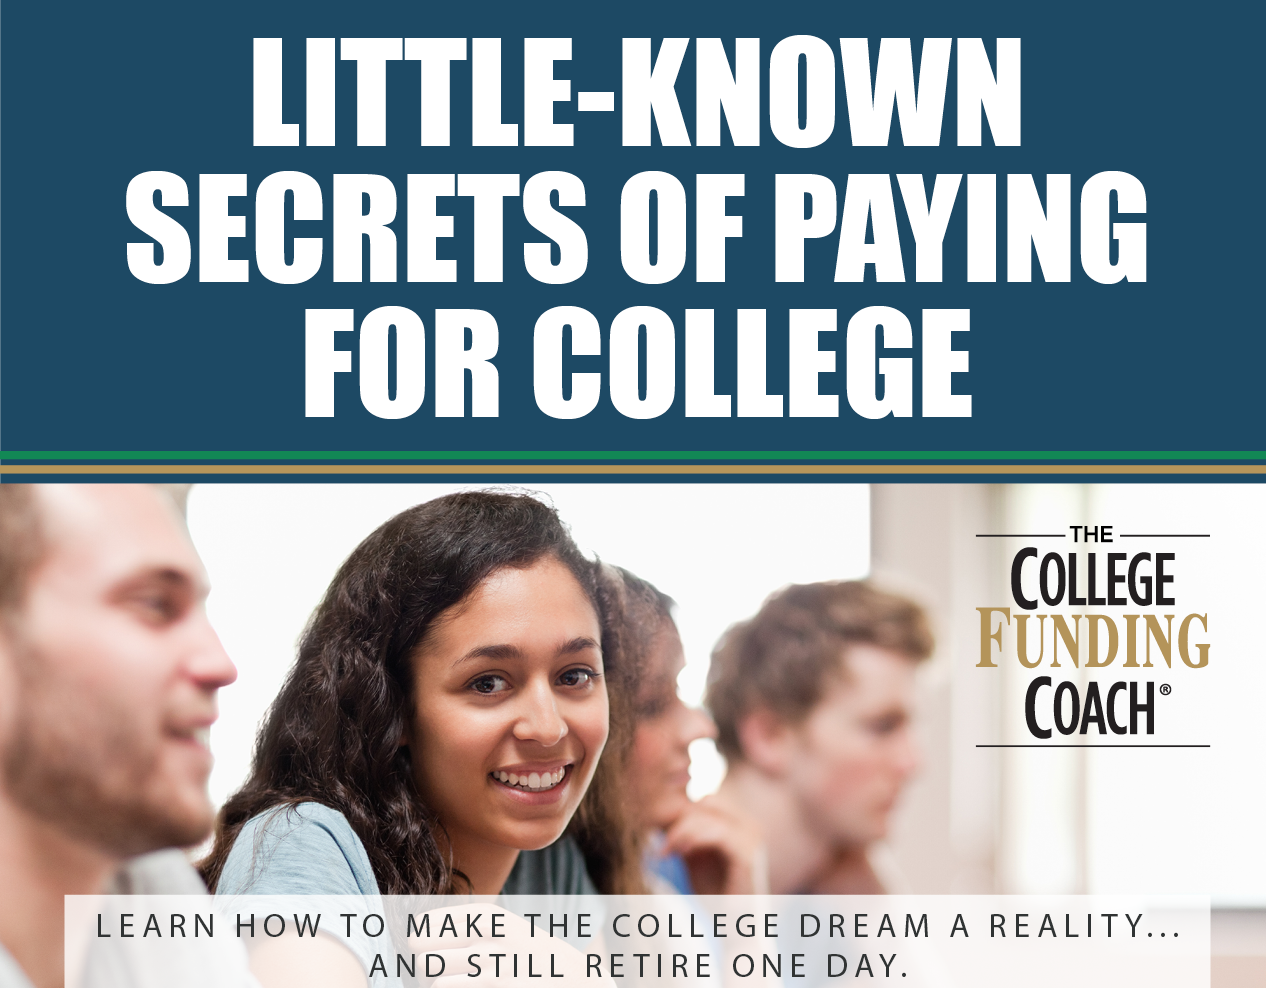 Little-Known Secrets of Paying for College